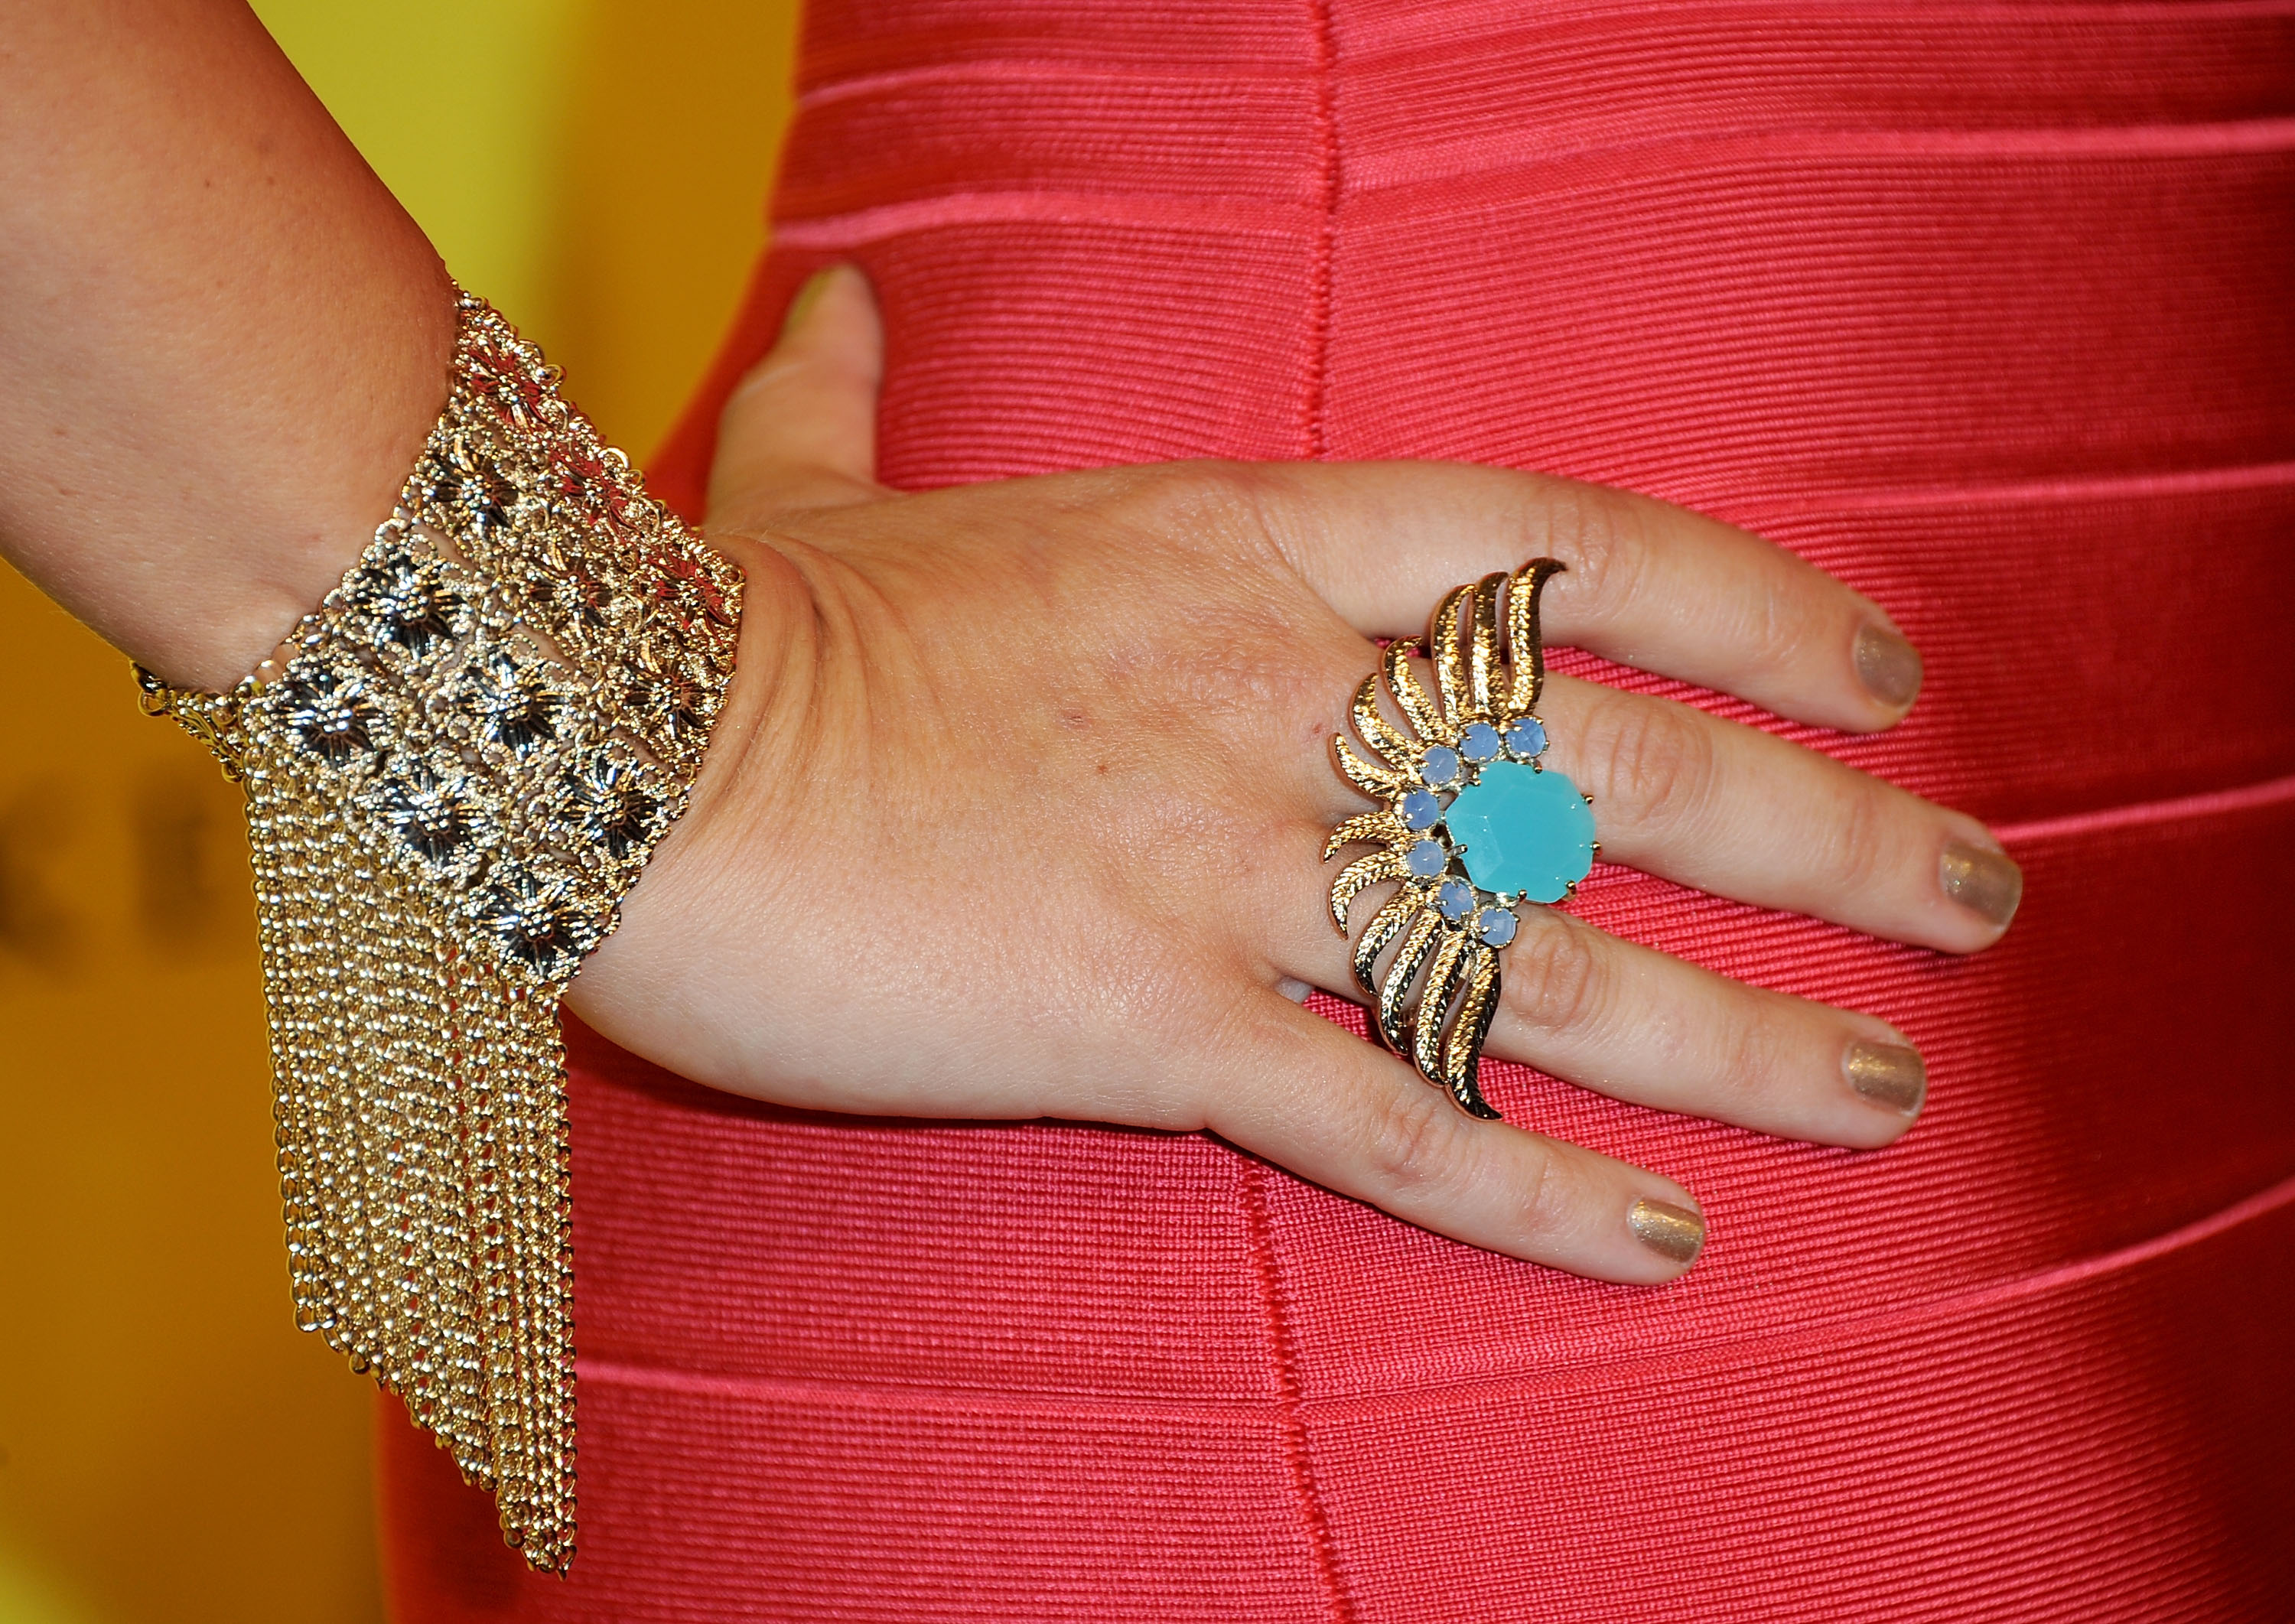 """Kendra Scott Jewelry Of Beverly Hills Grand Opening Benefiting """"Blessings In A Backpack"""""""